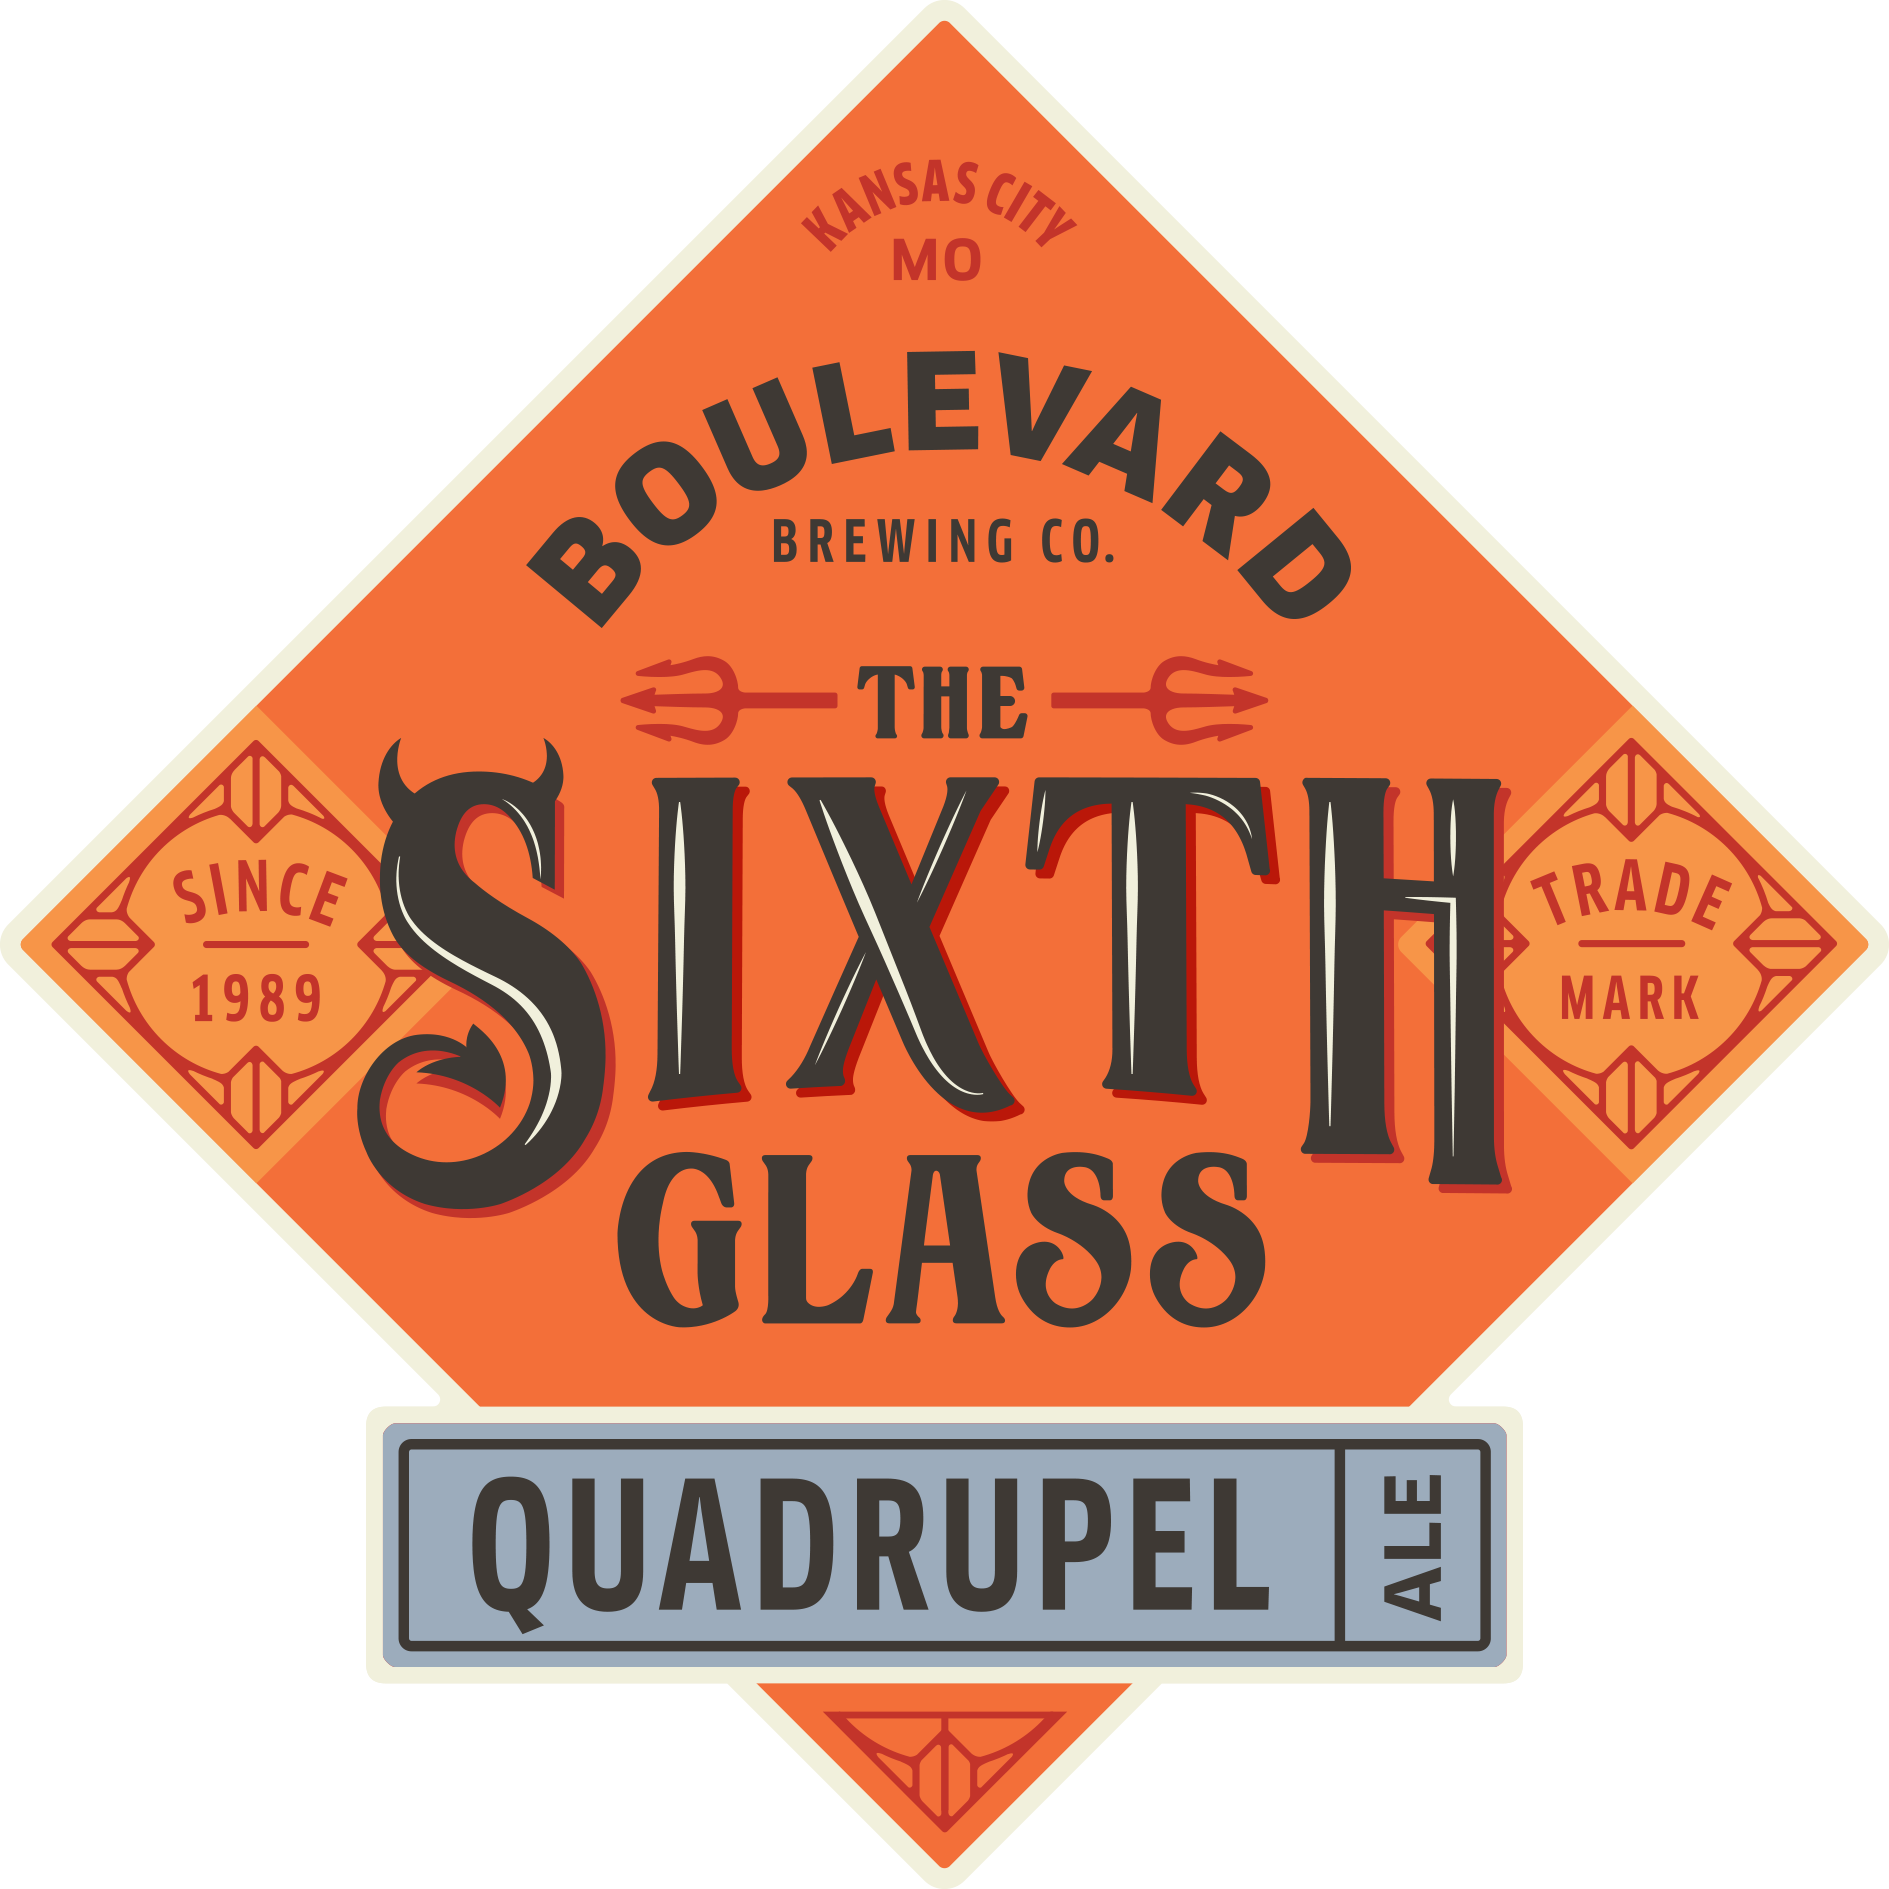 The Sixth Glass